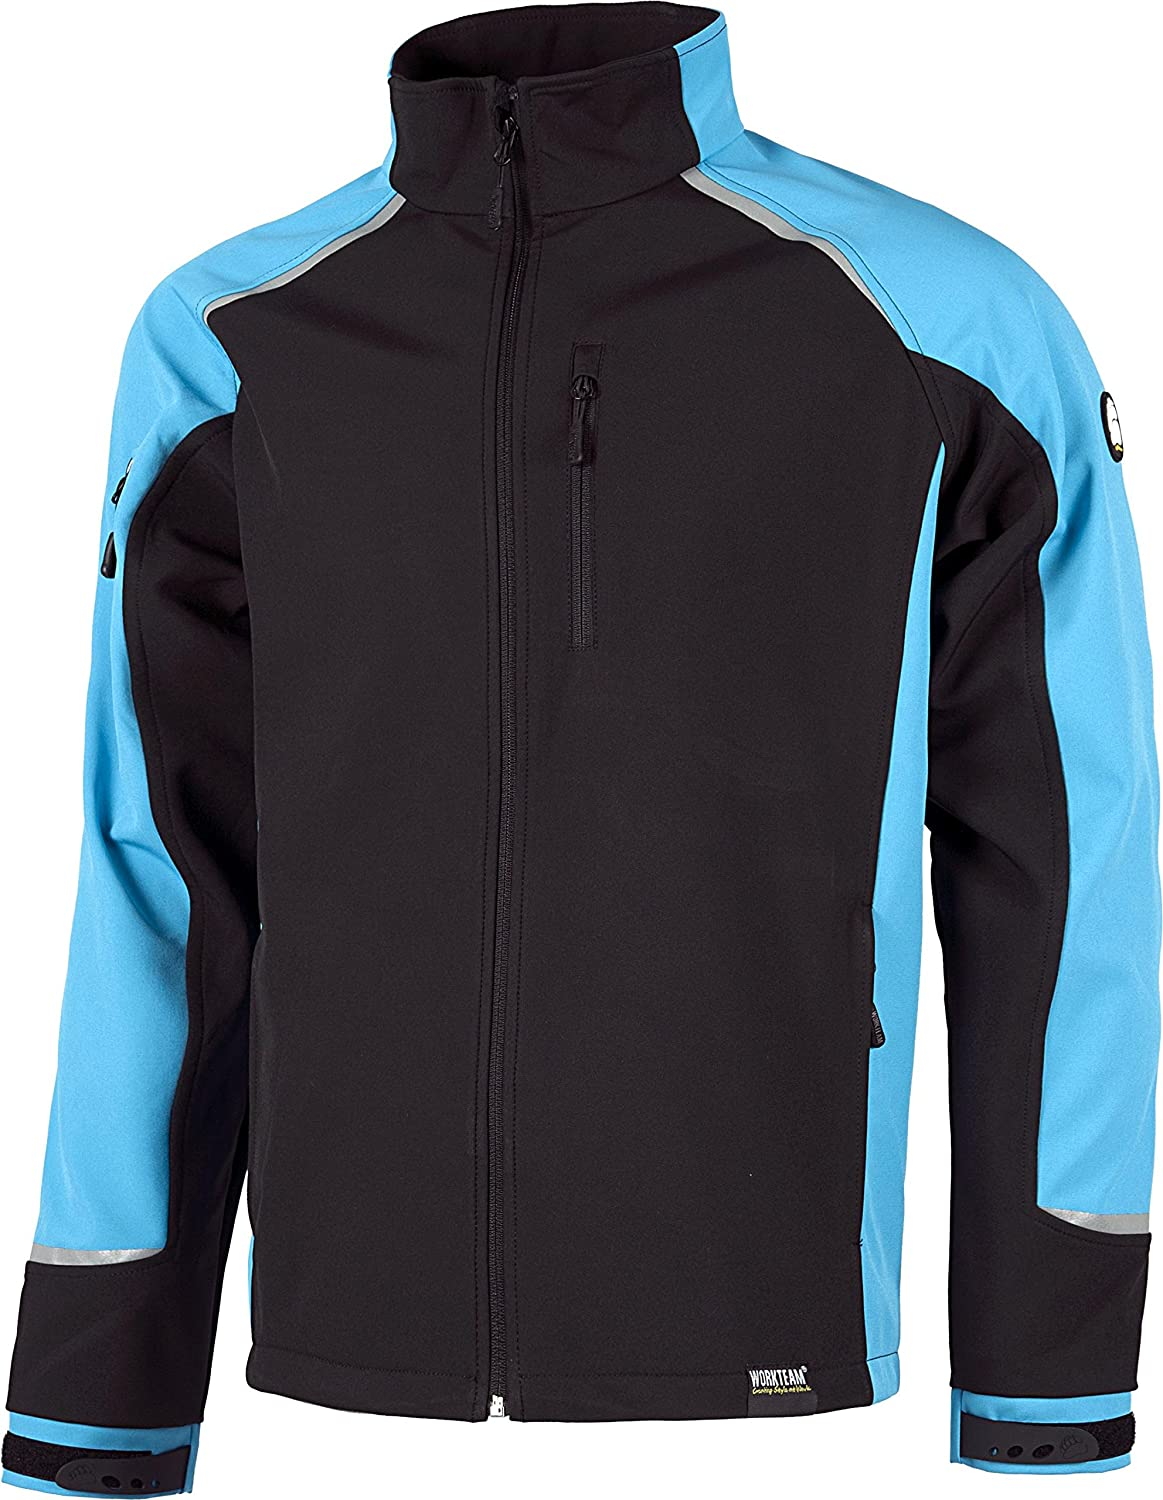 CHAQUETA WORKSHELL S9498 NGR/AZUL T-S: Amazon.es: Bricolaje ...